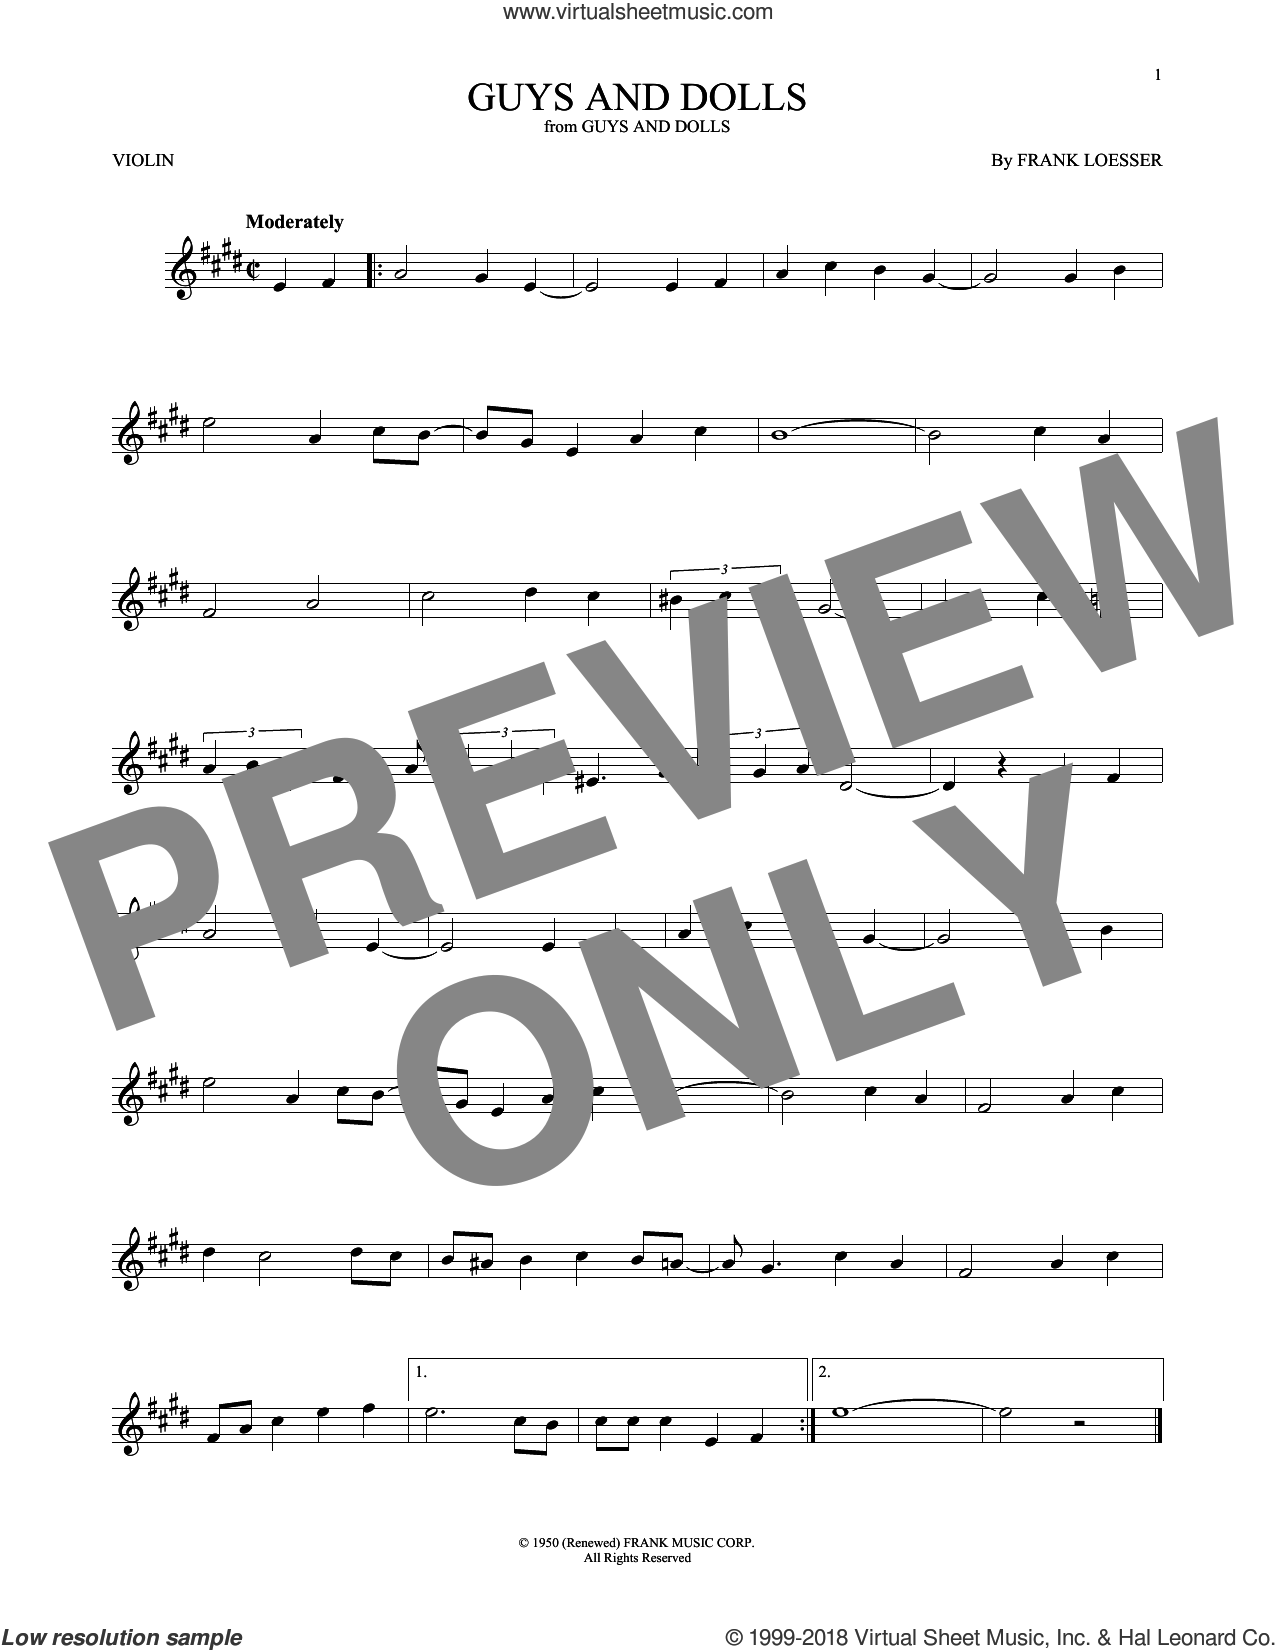 Guys And Dolls sheet music for violin solo by Frank Loesser, intermediate skill level